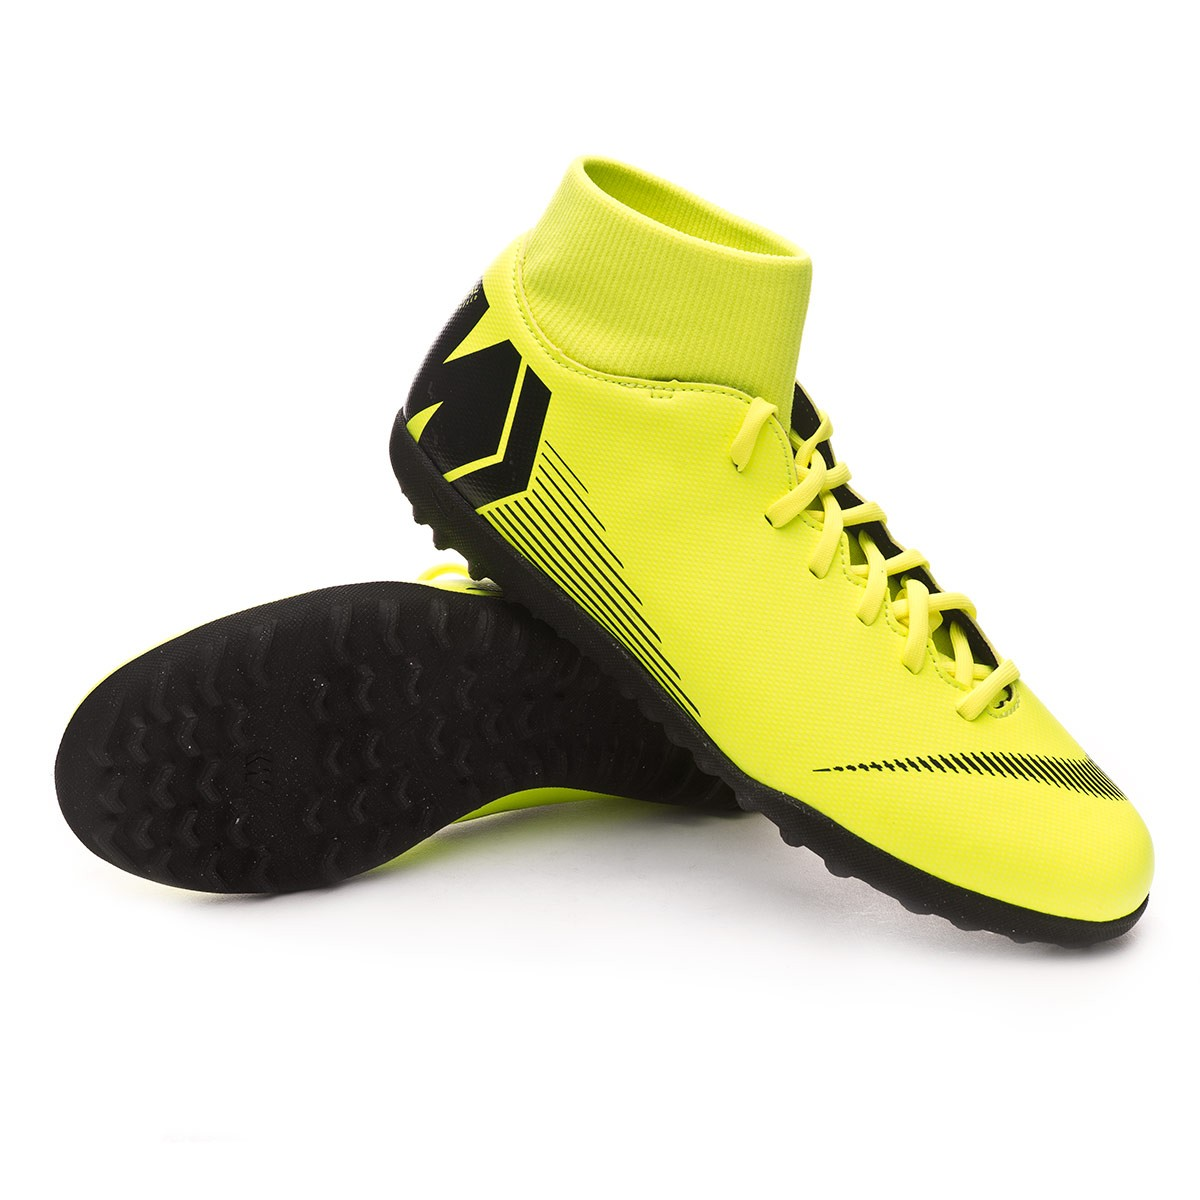 4d00123c3 Football Boot Nike Mercurial SuperflyX VI Club Turf Volt-Black ...